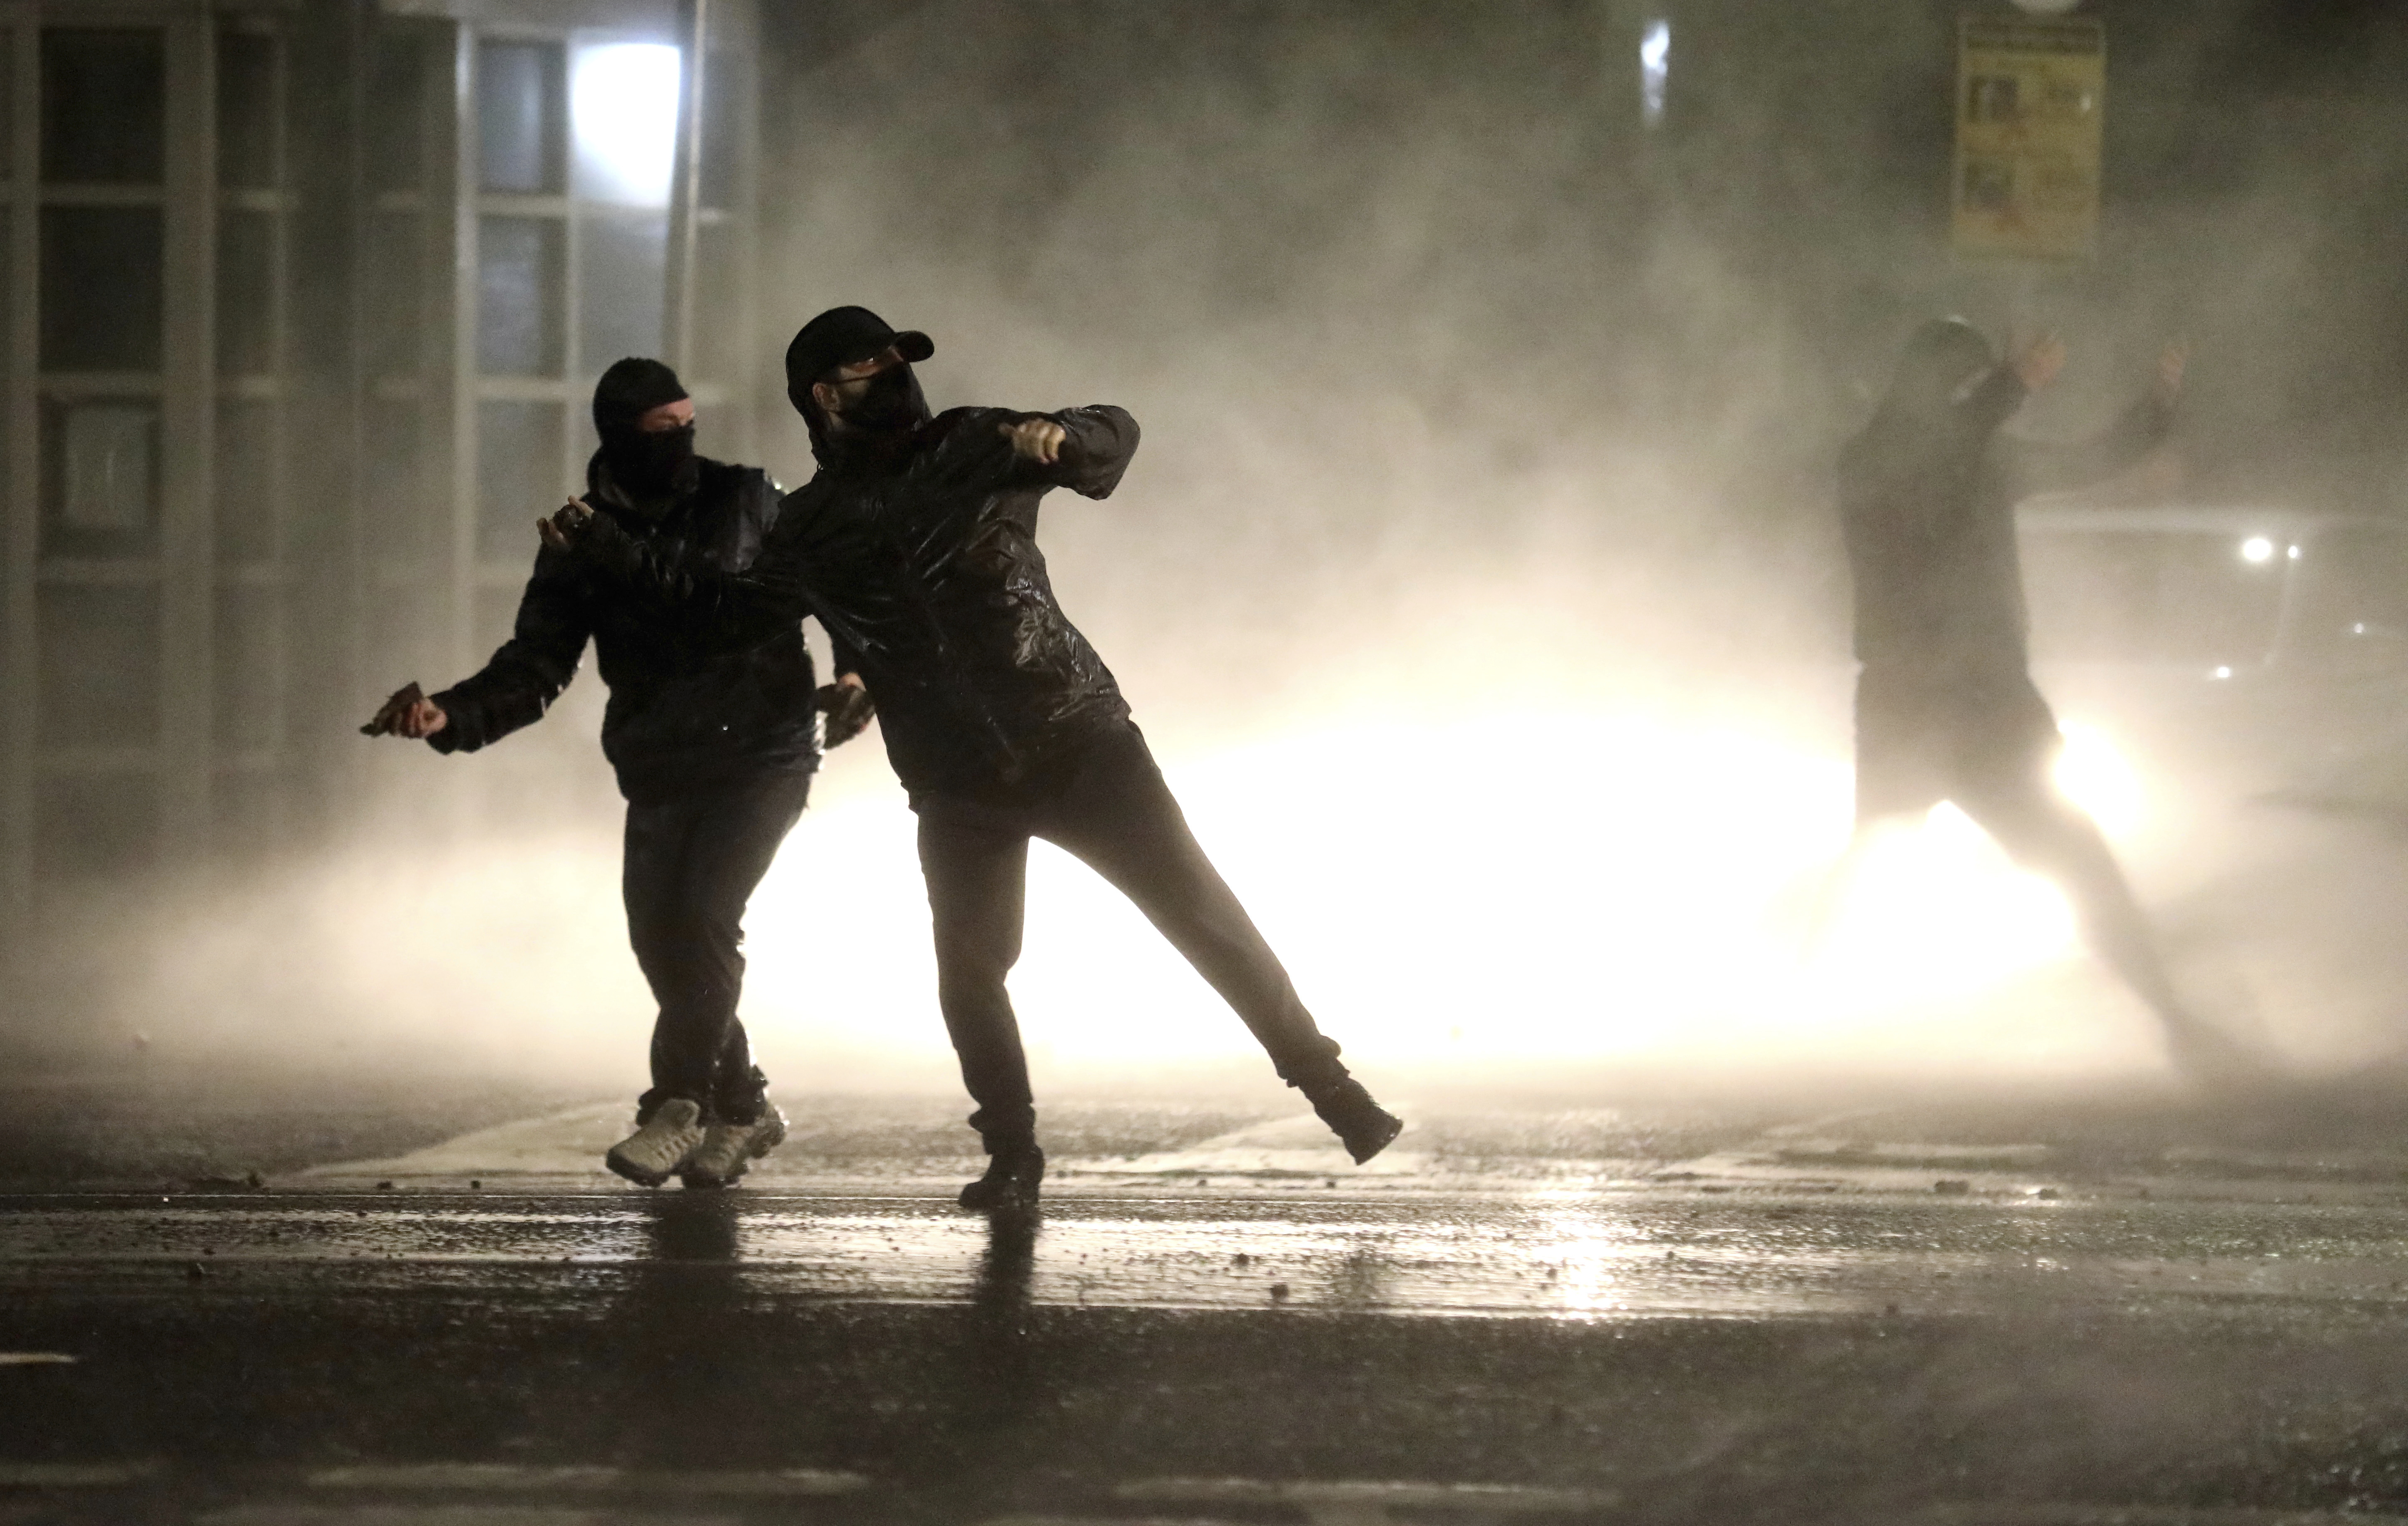 Nationalist youths confront police lines near the Peace Wall in West Belfast, Northern Ireland, Thursday, April 8, 2021.